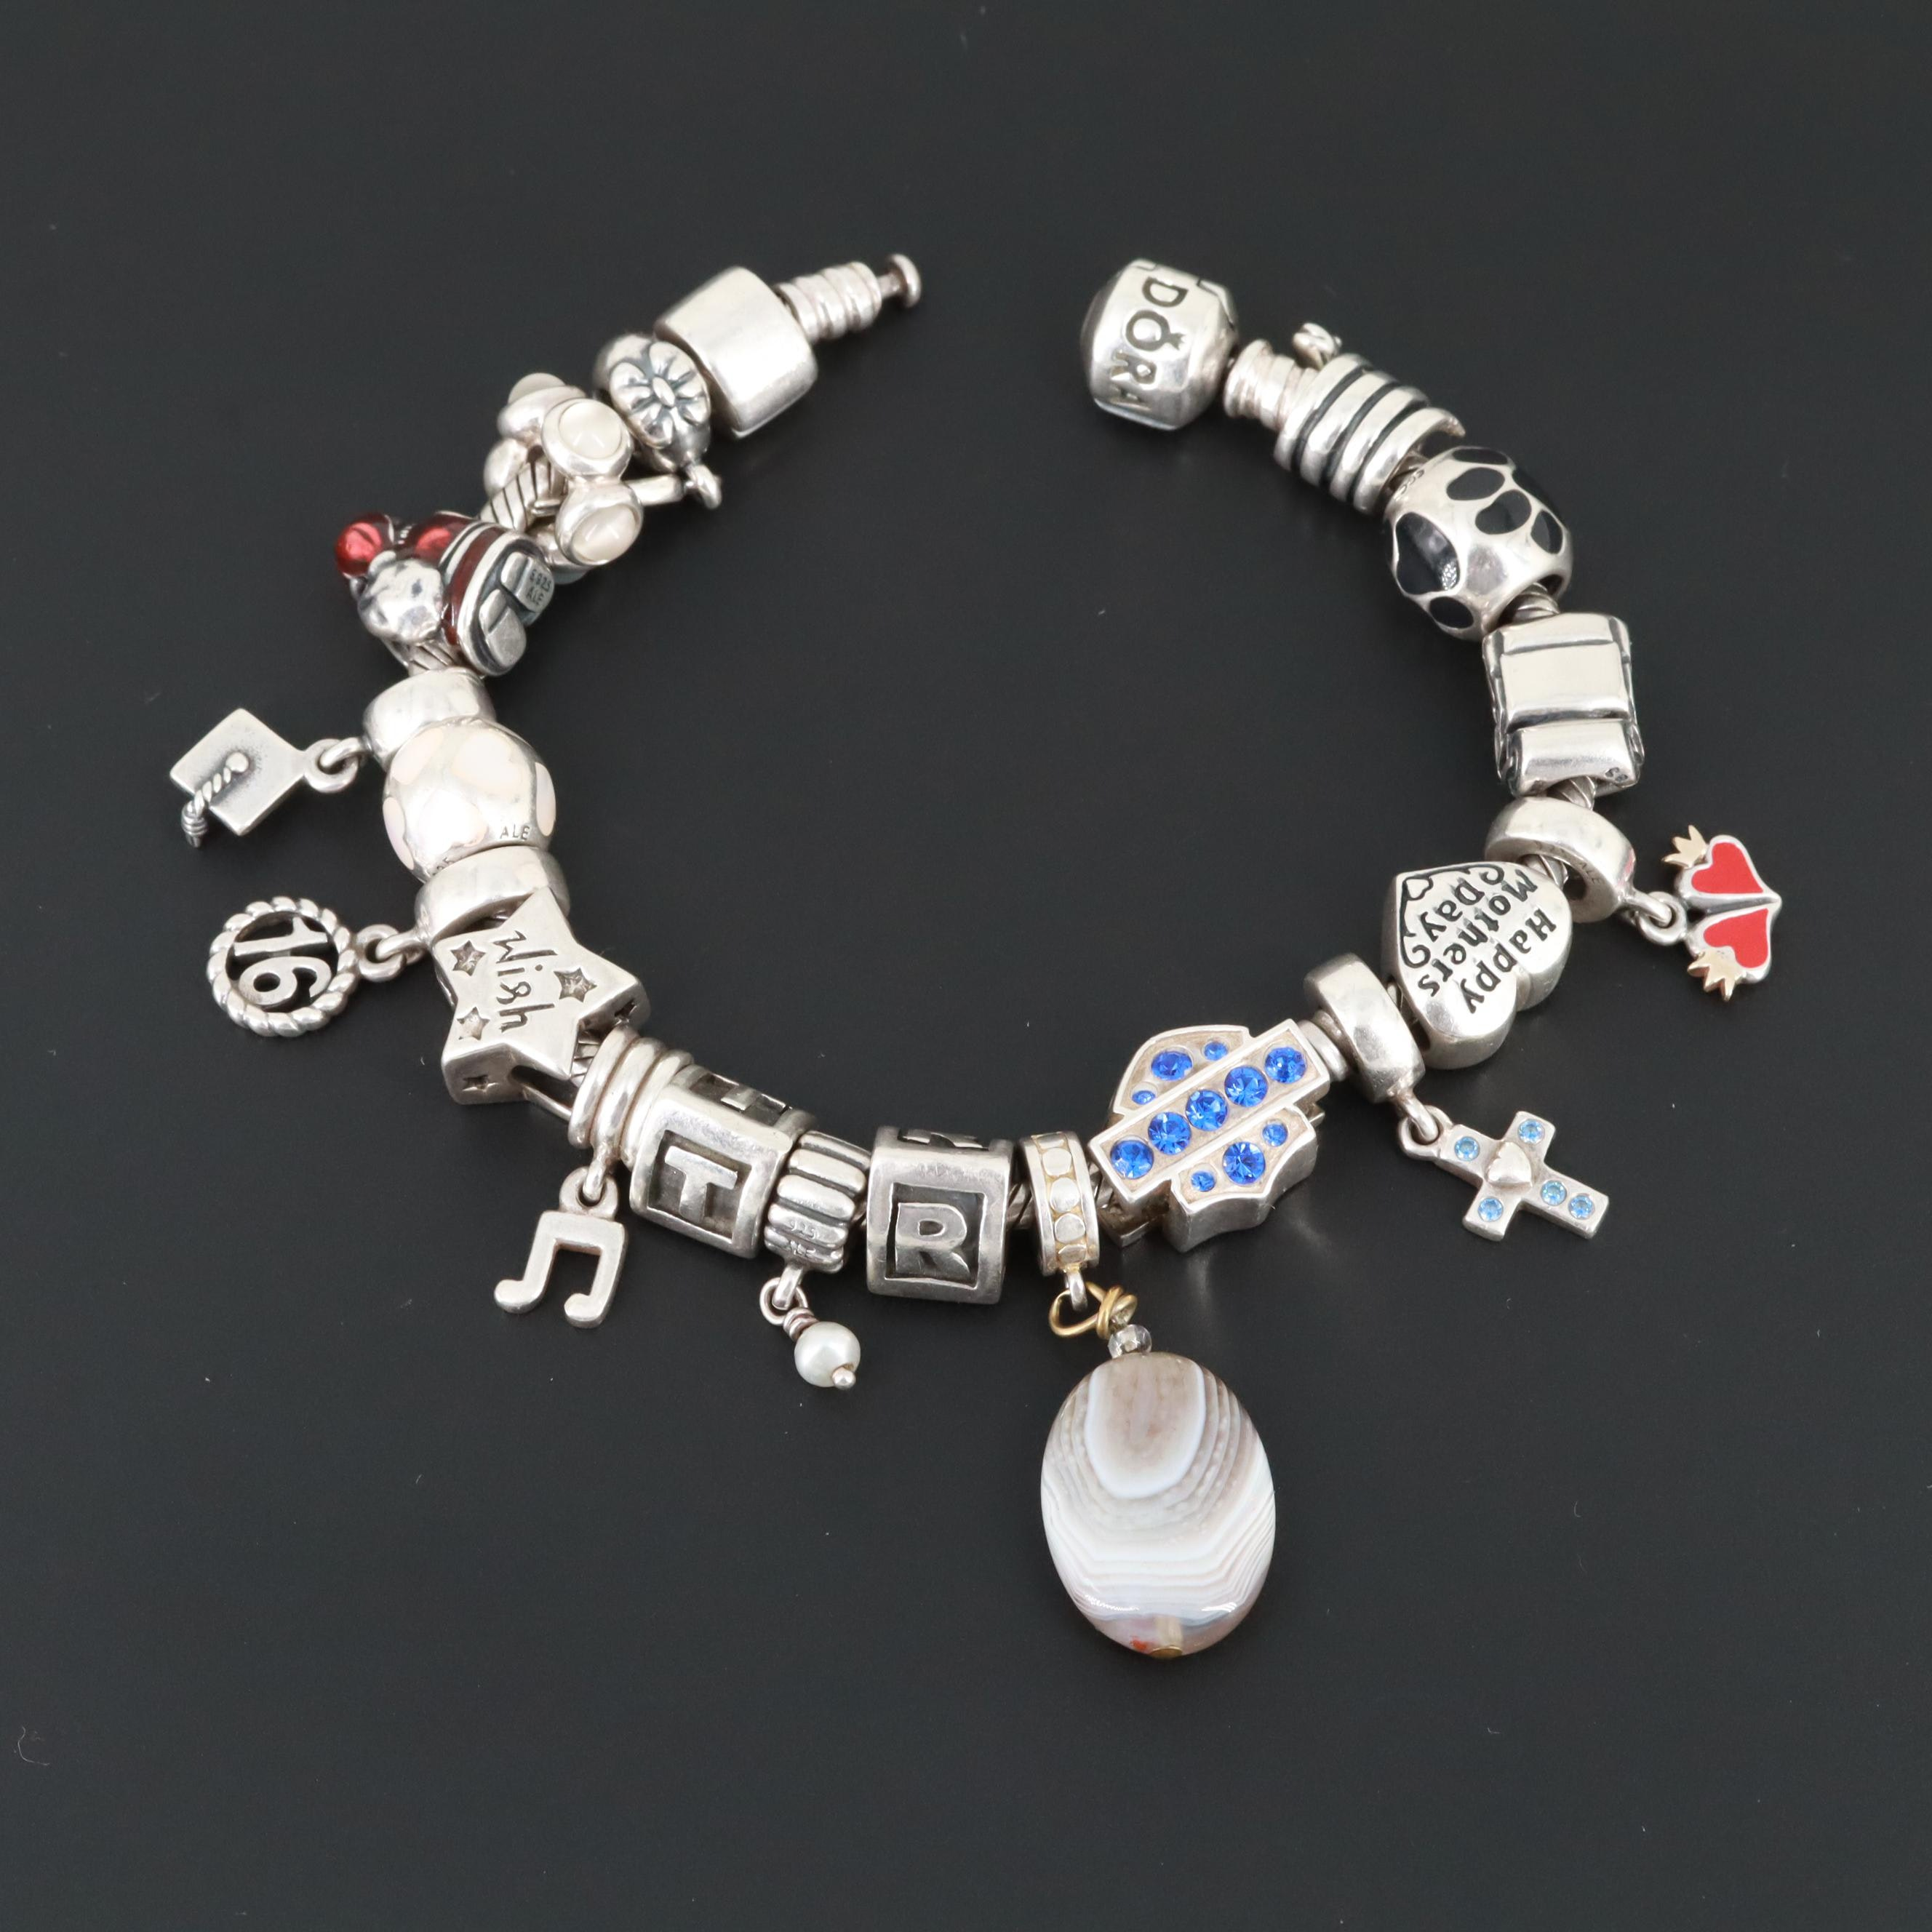 Pandora Sterling Agate, Moonstone, Mother of Pearl Charm Bracelet with Charms